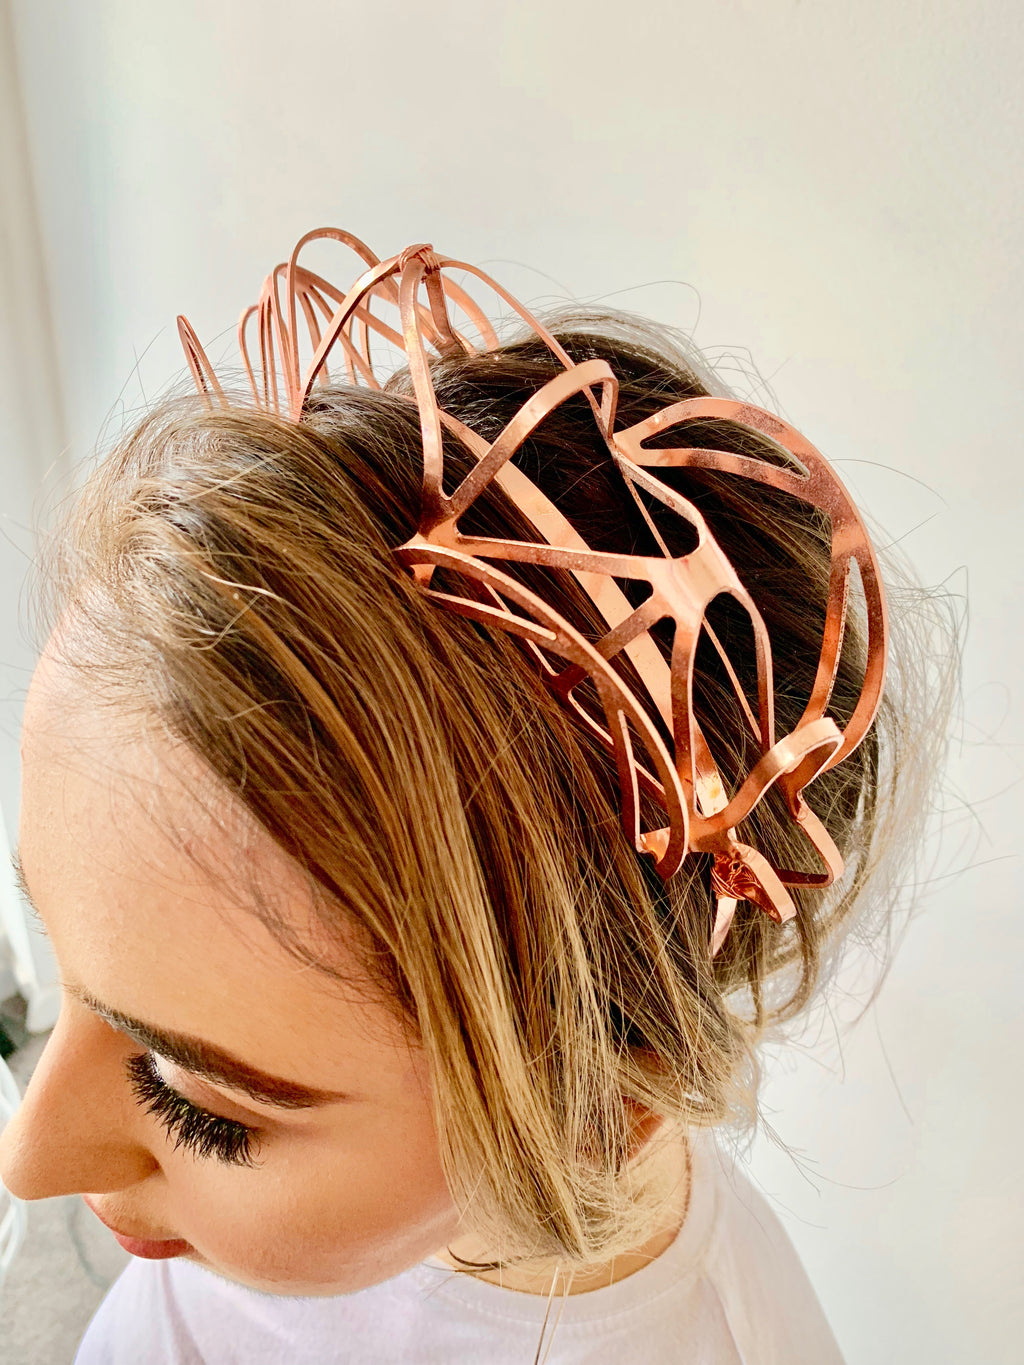 Natalie Bikicki Solaris Headband Rose Gold